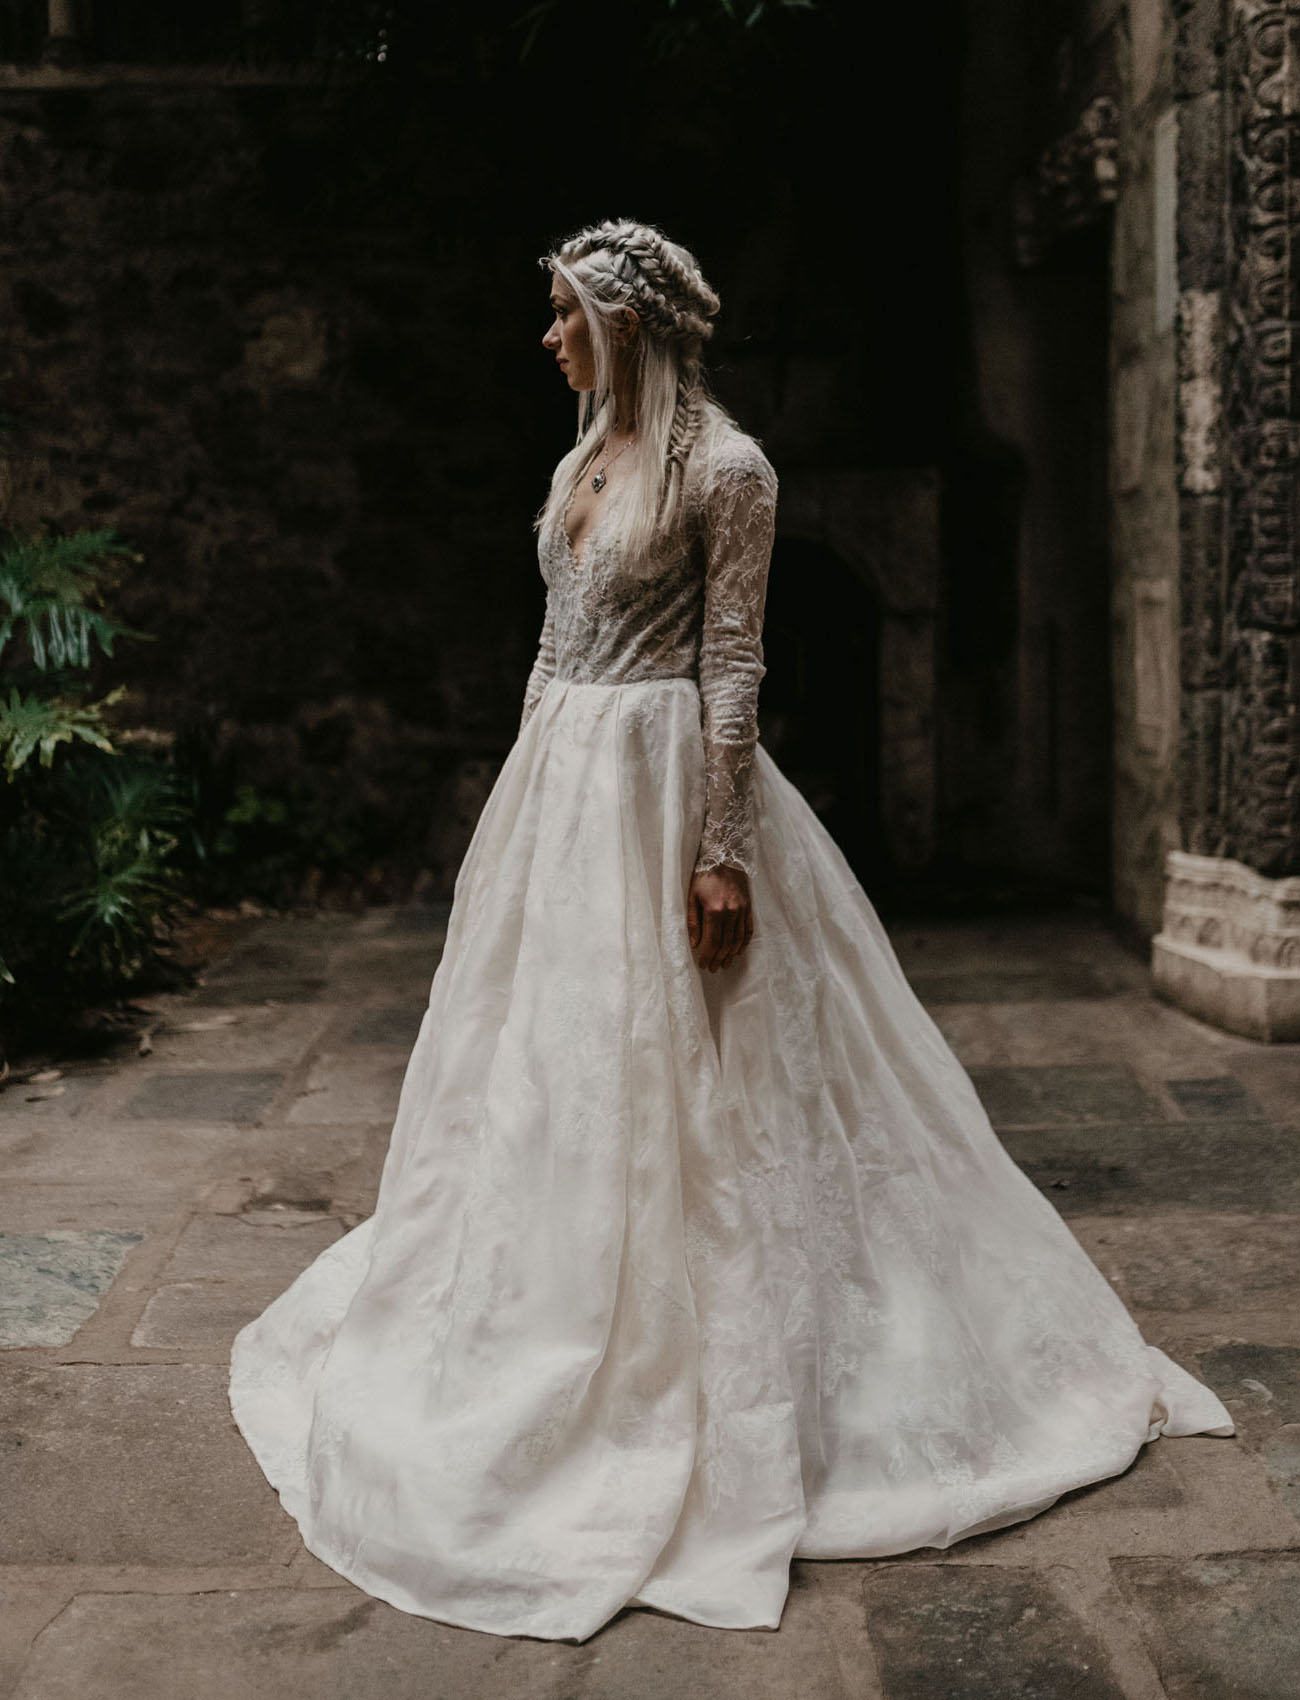 The bride was rocking a lace A line wedding dress with long sleeves and a double braided halo half updo